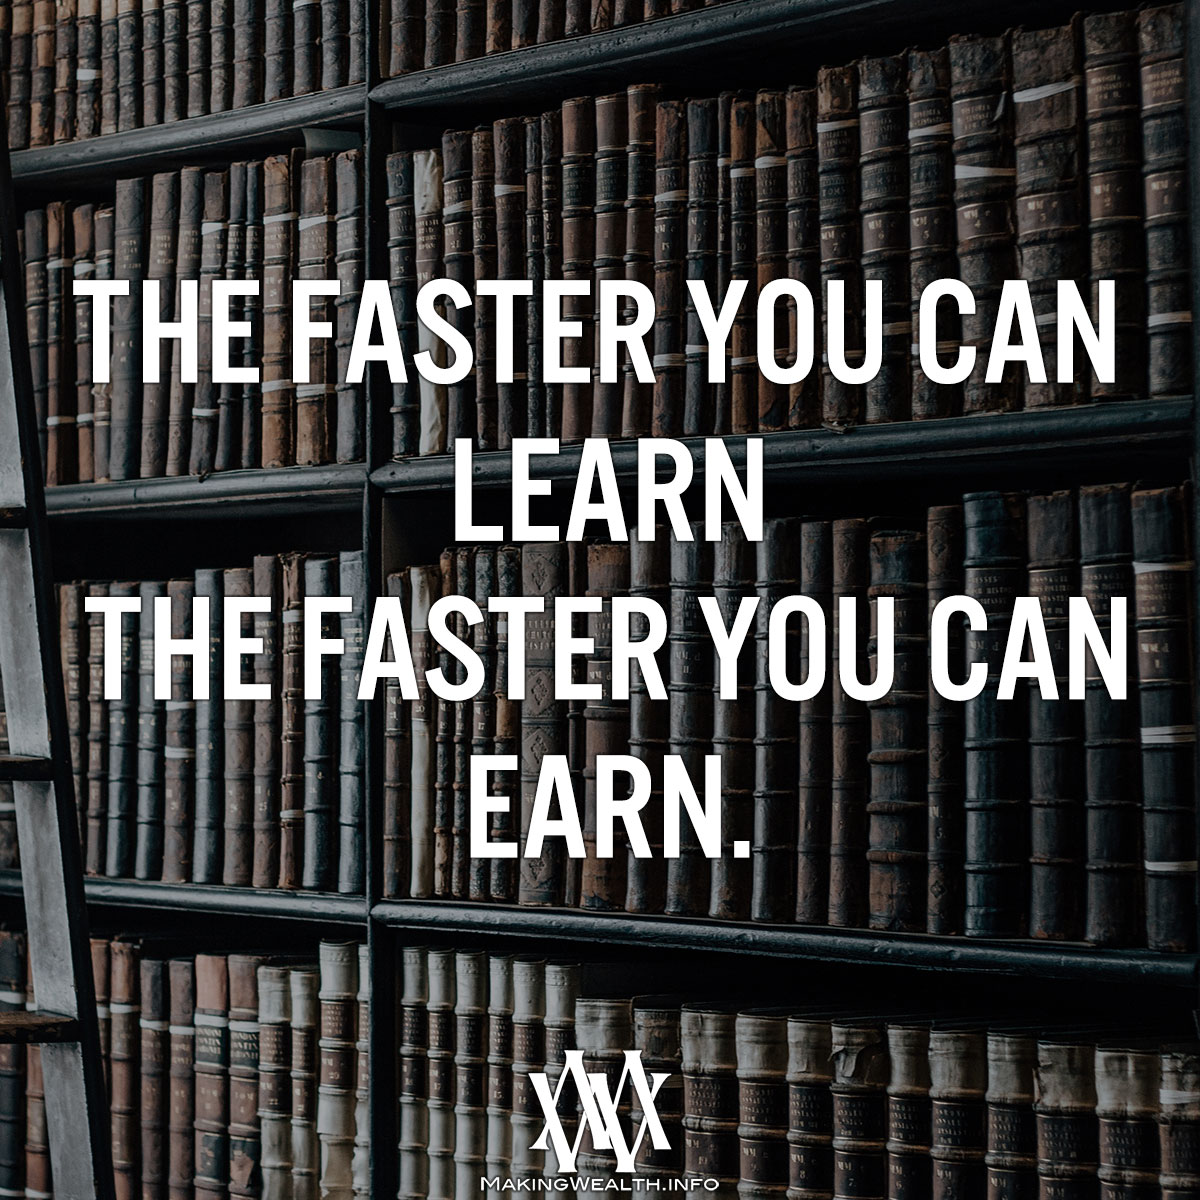 The Faster You Can Learn, The Faster You Can Earn